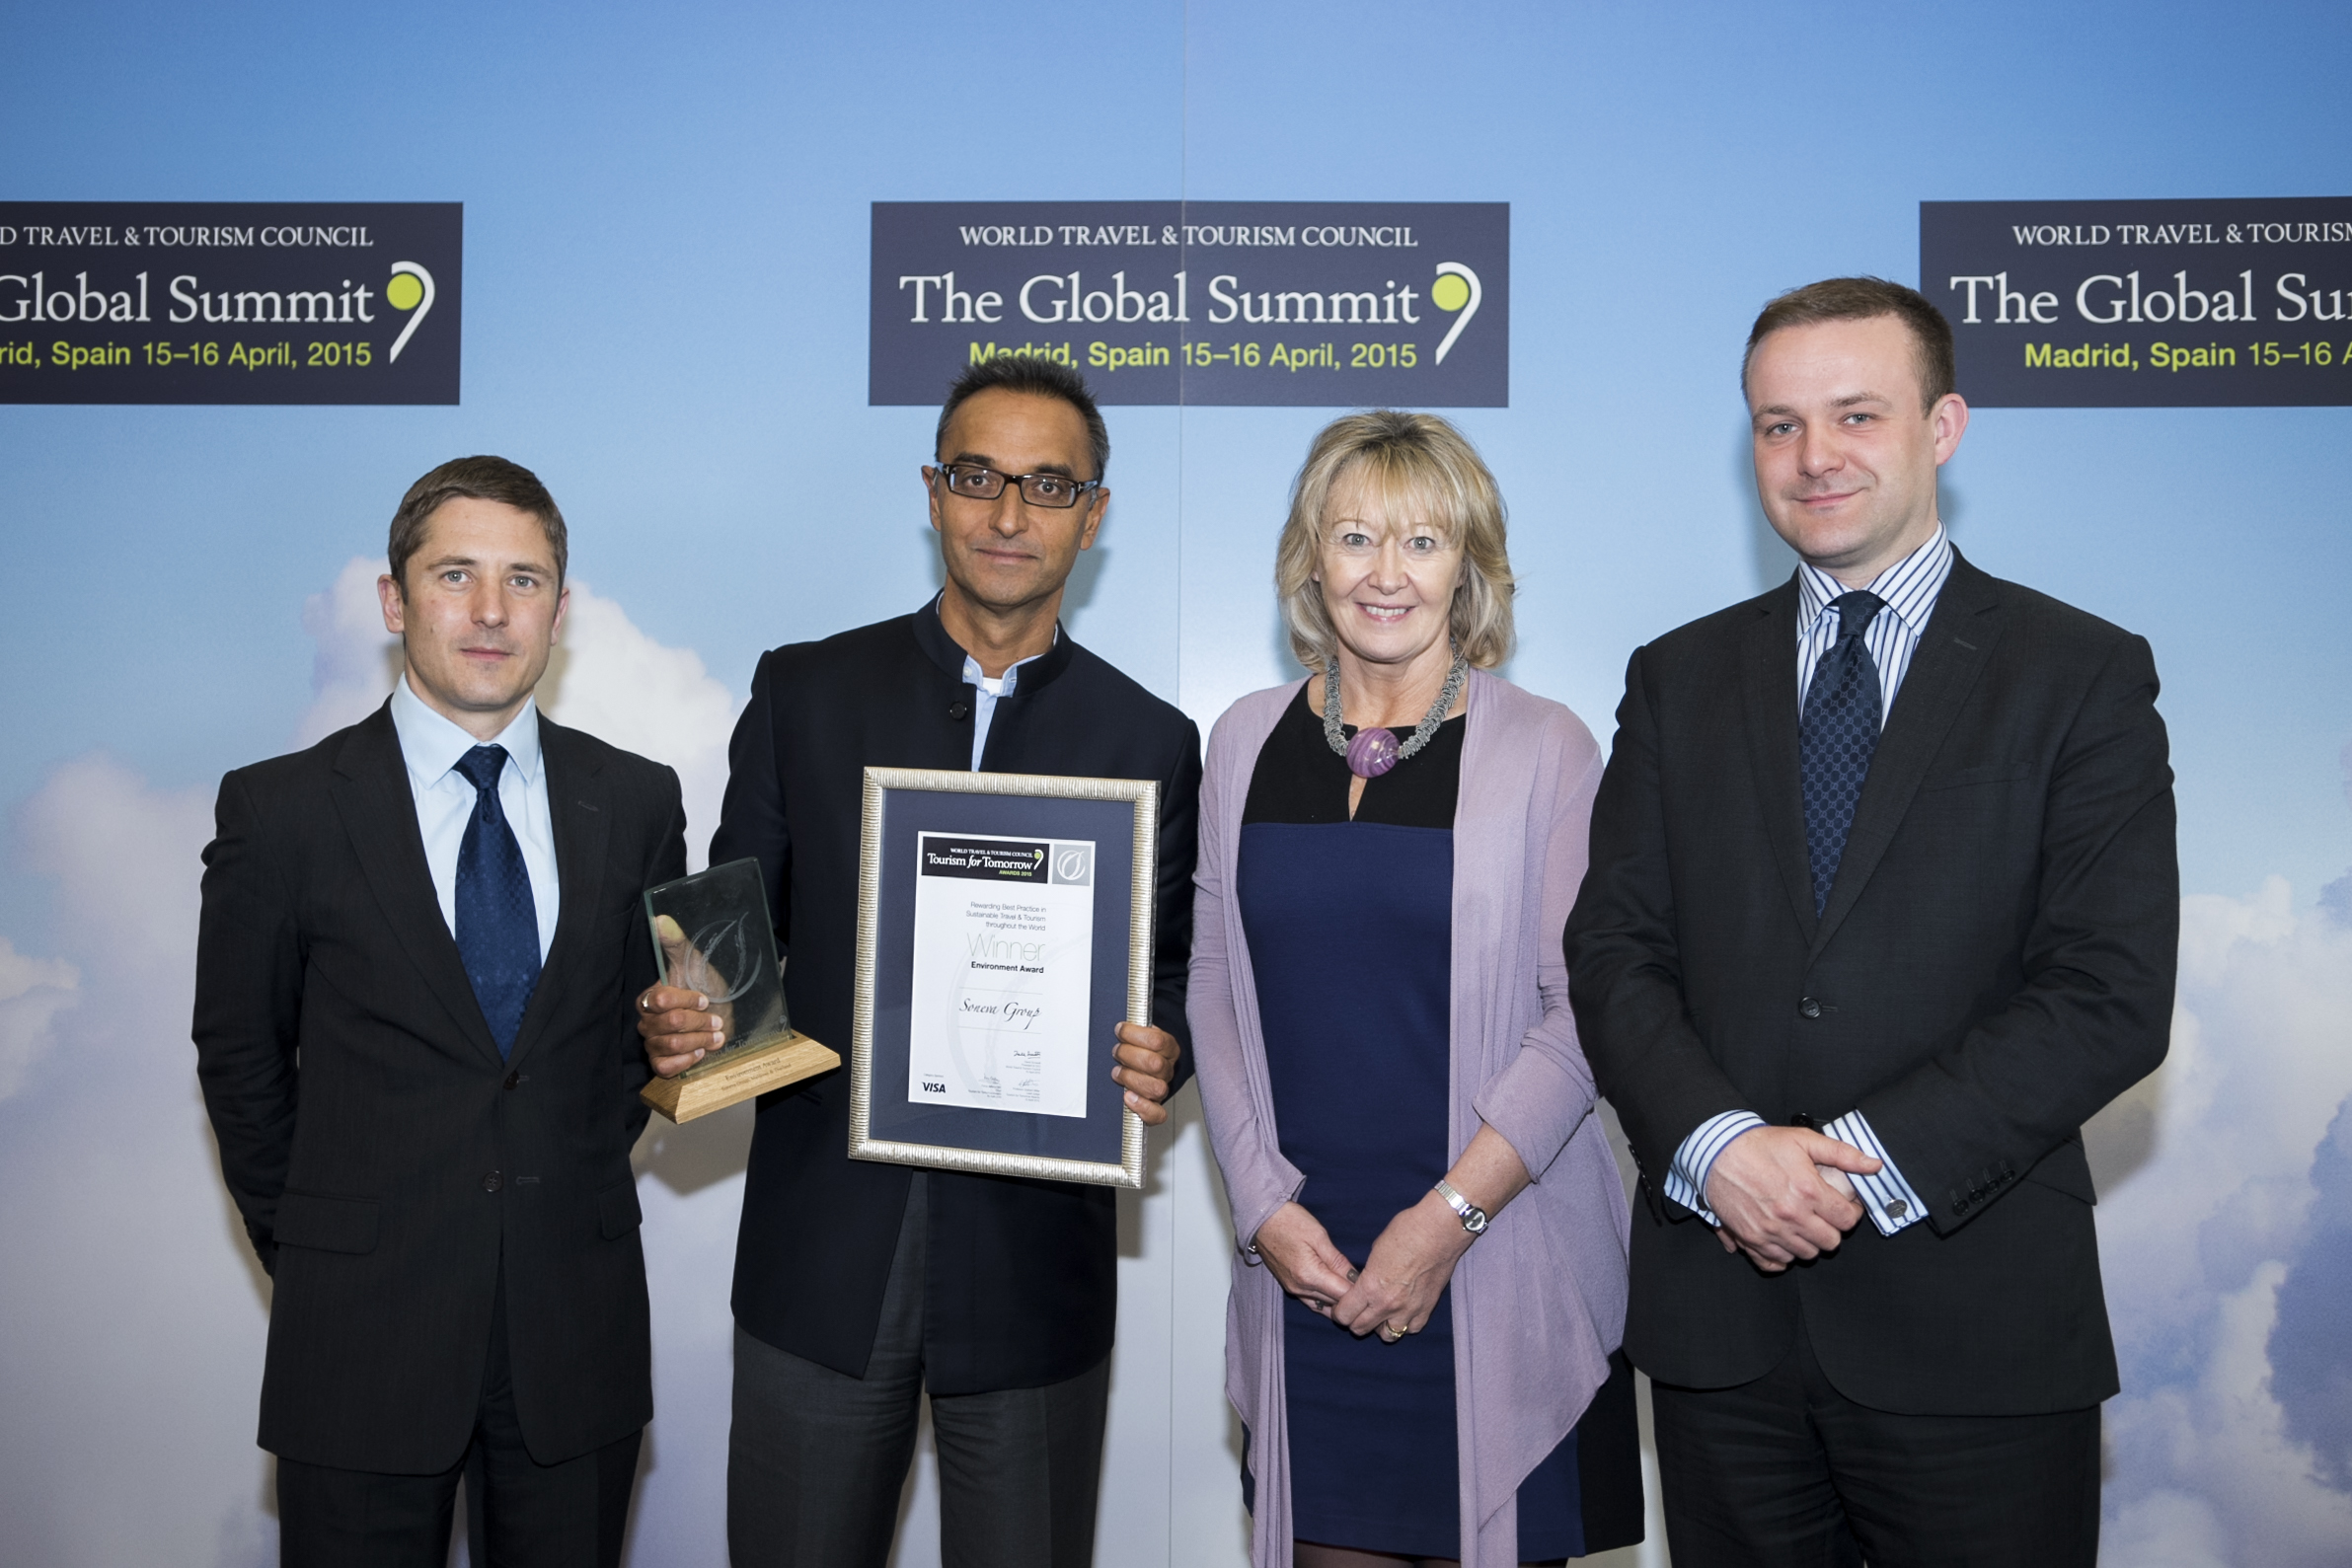 Sonu Shivdasani of Soneva accepting WTTC award